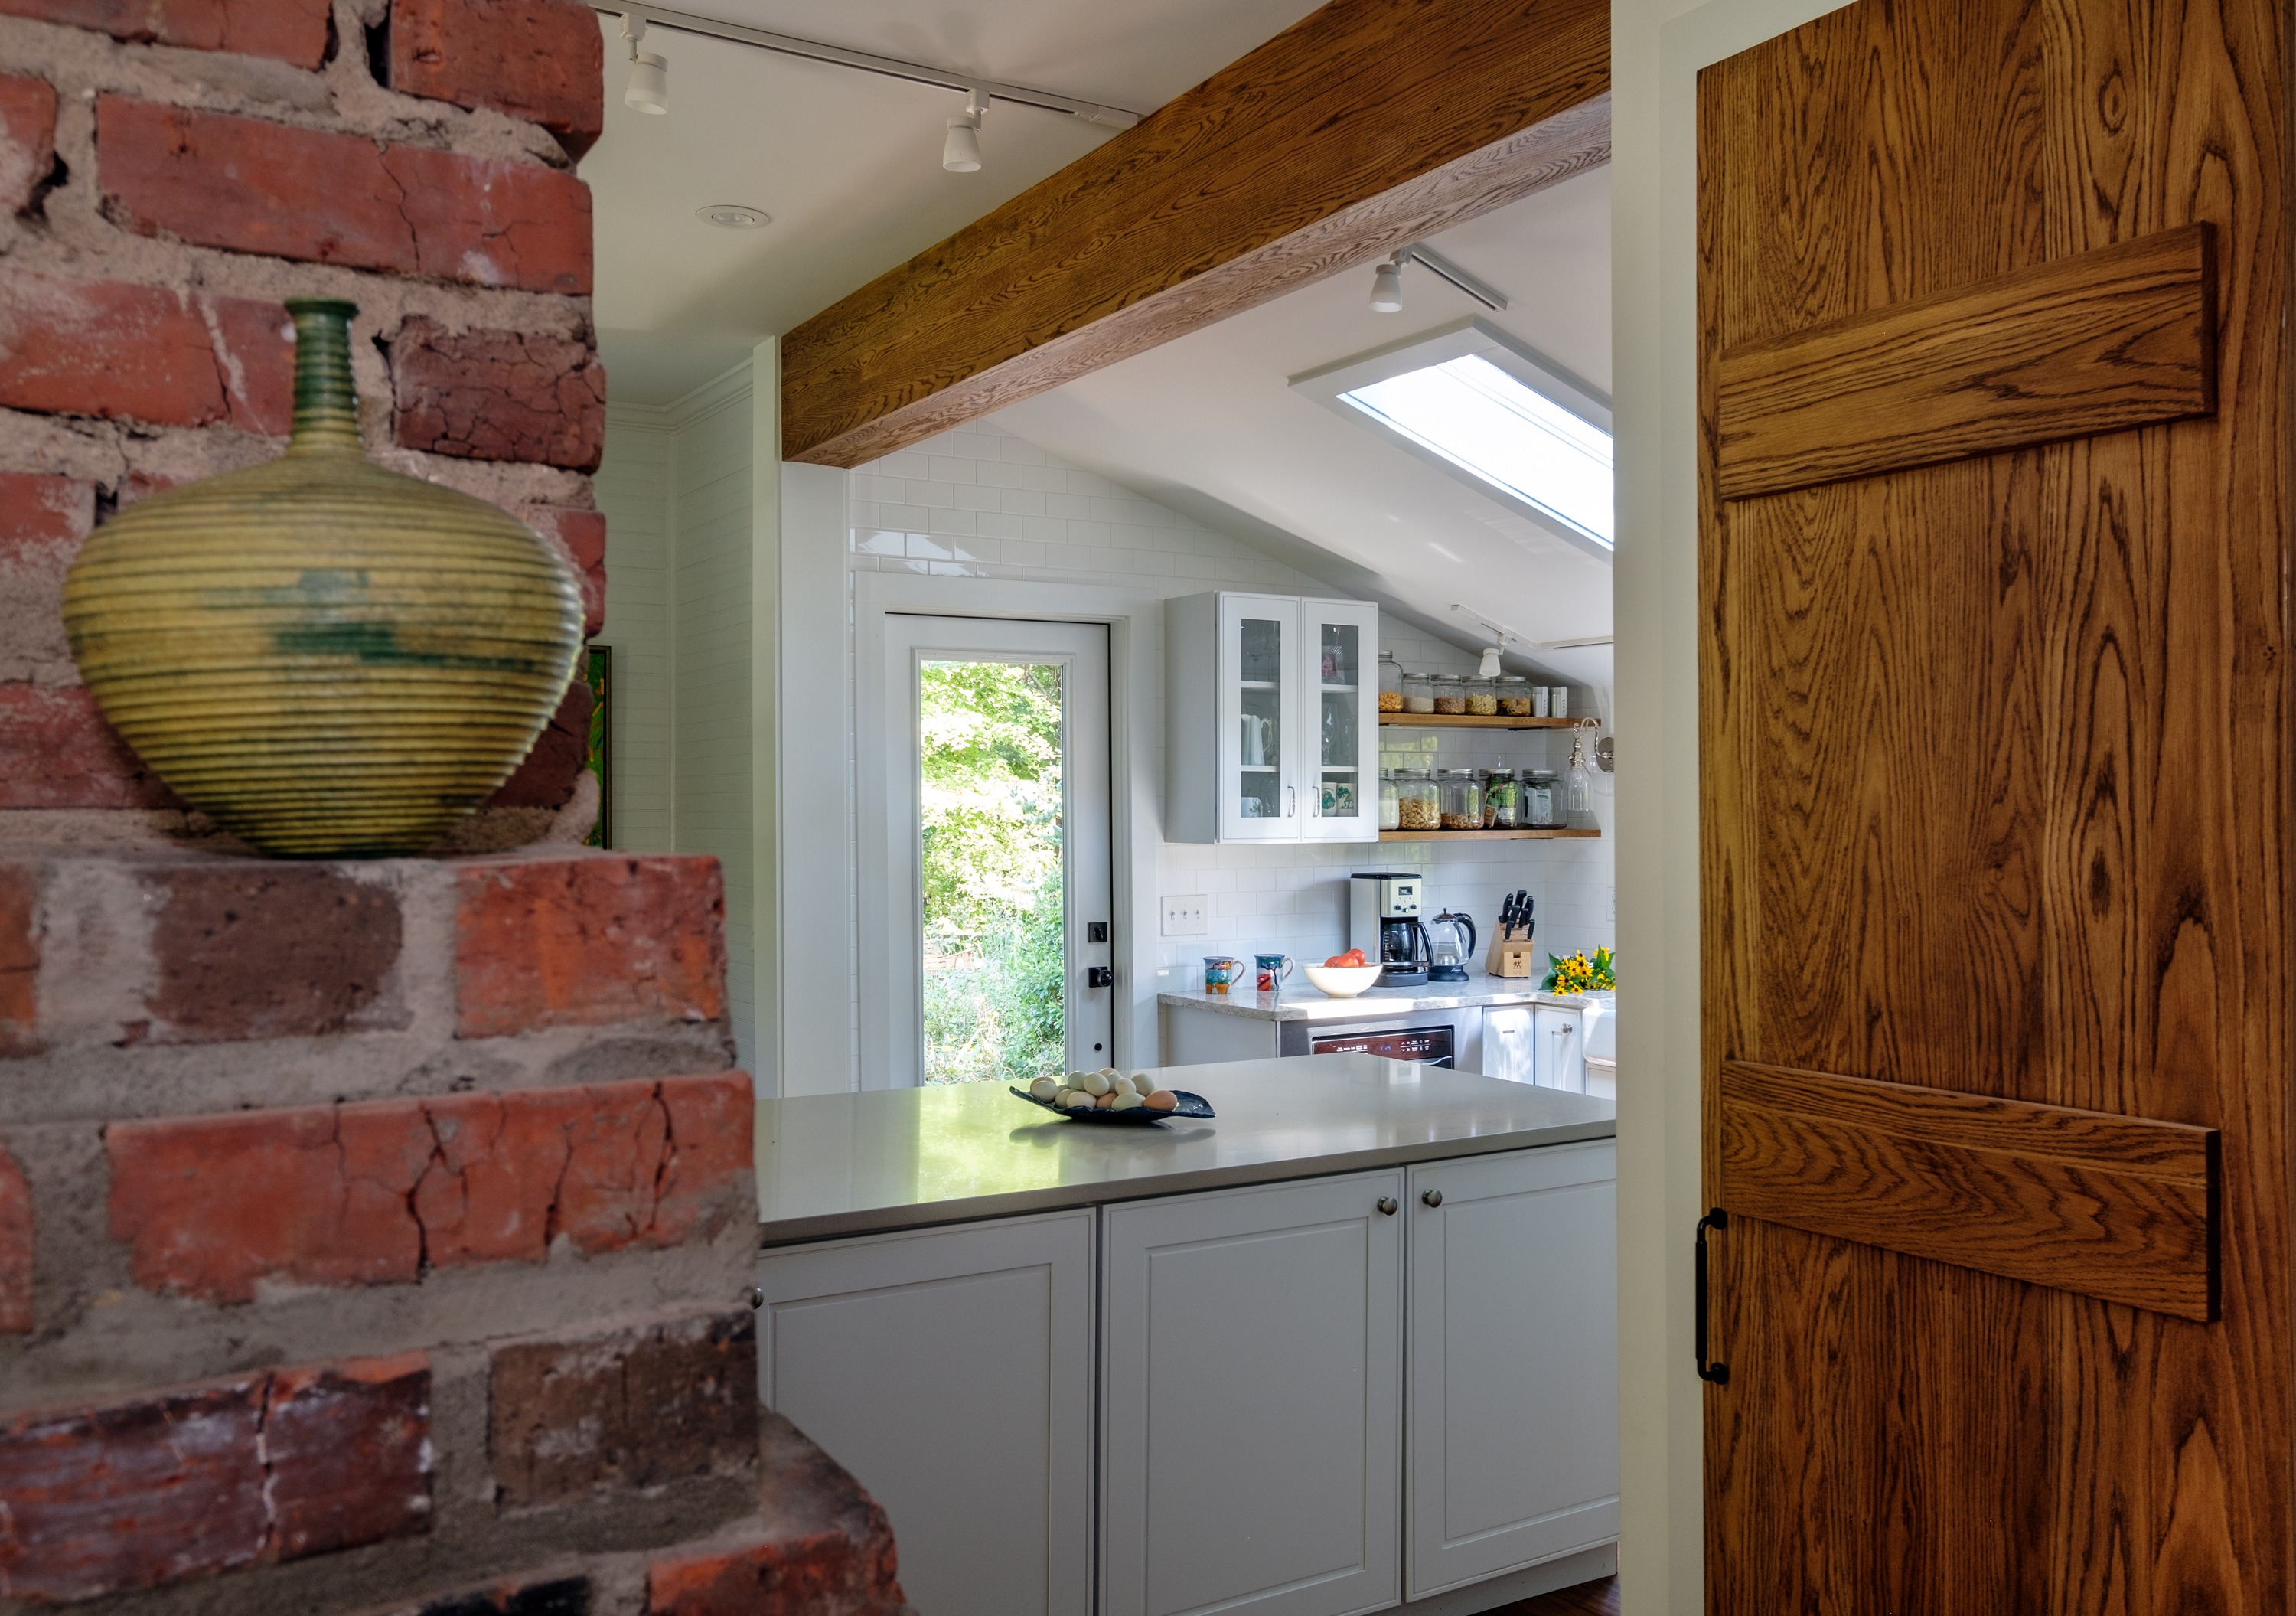 Kitchen - Framed by fireplace and pantry